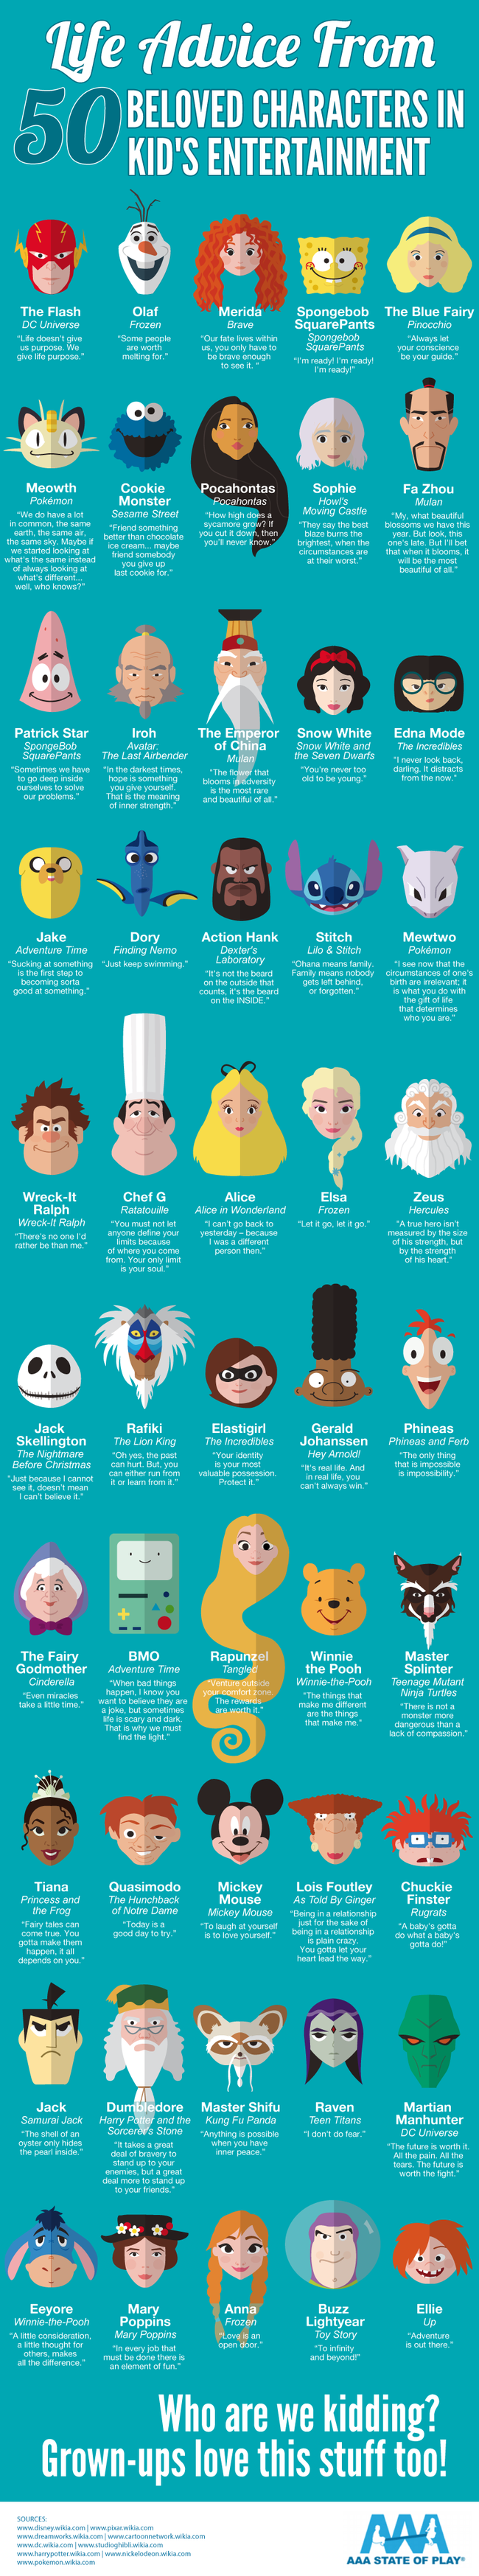 Life Advice from 50 Beloved Characters from Kid's Entertainment - Sublime99